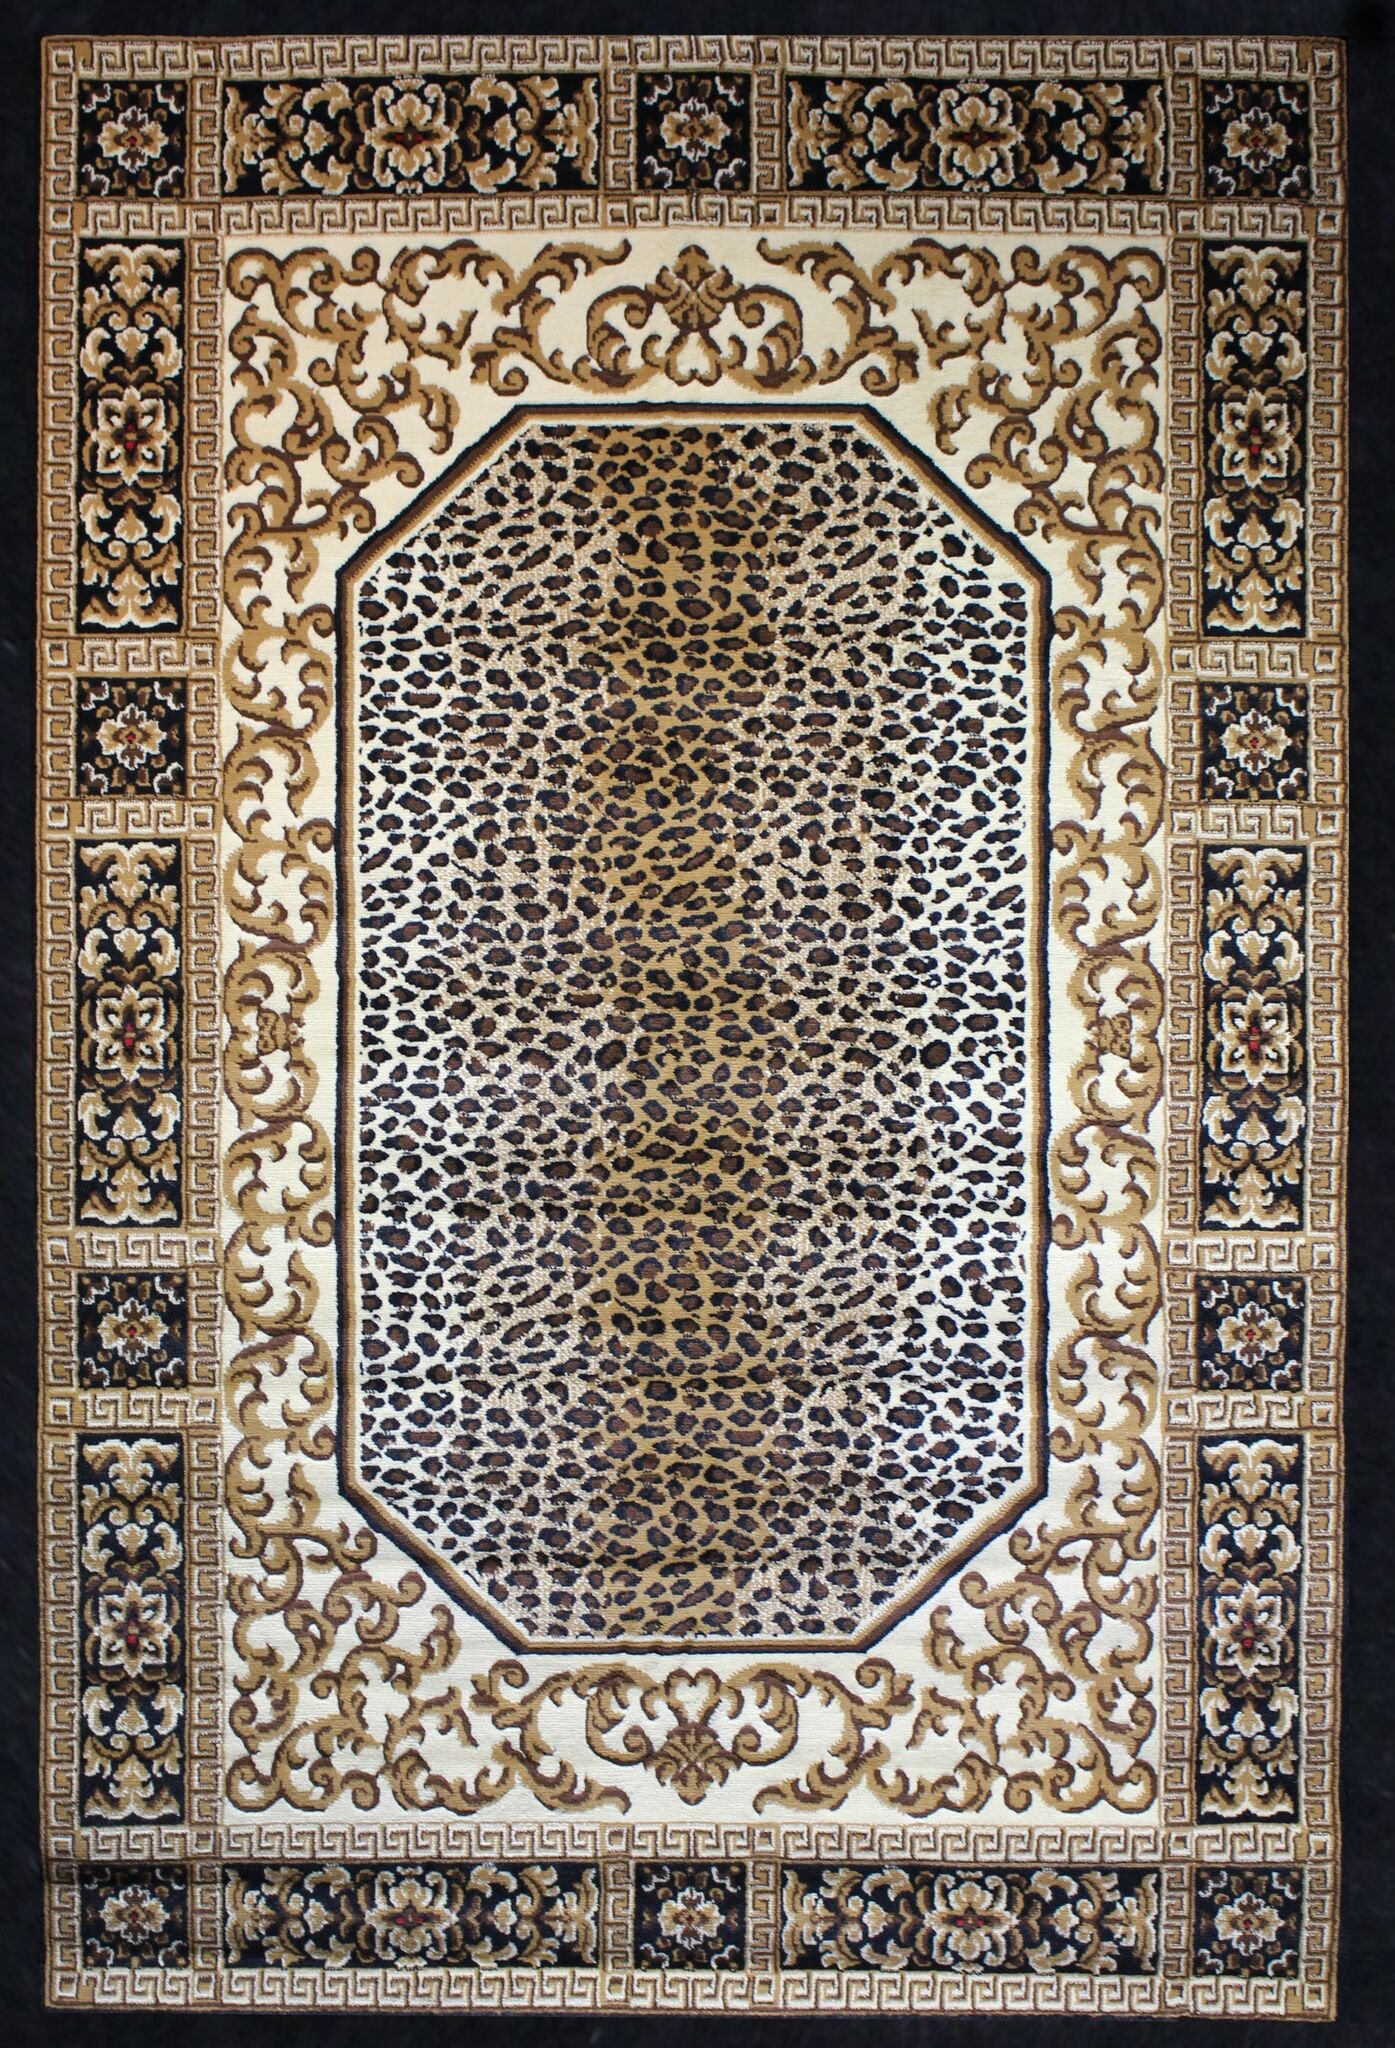 Leopard Rug Print Modern Area Rug New Carpet Size Options Available (1'.10'' X 2'.11'' Scatter Rug, Nouv-14 Leopard)